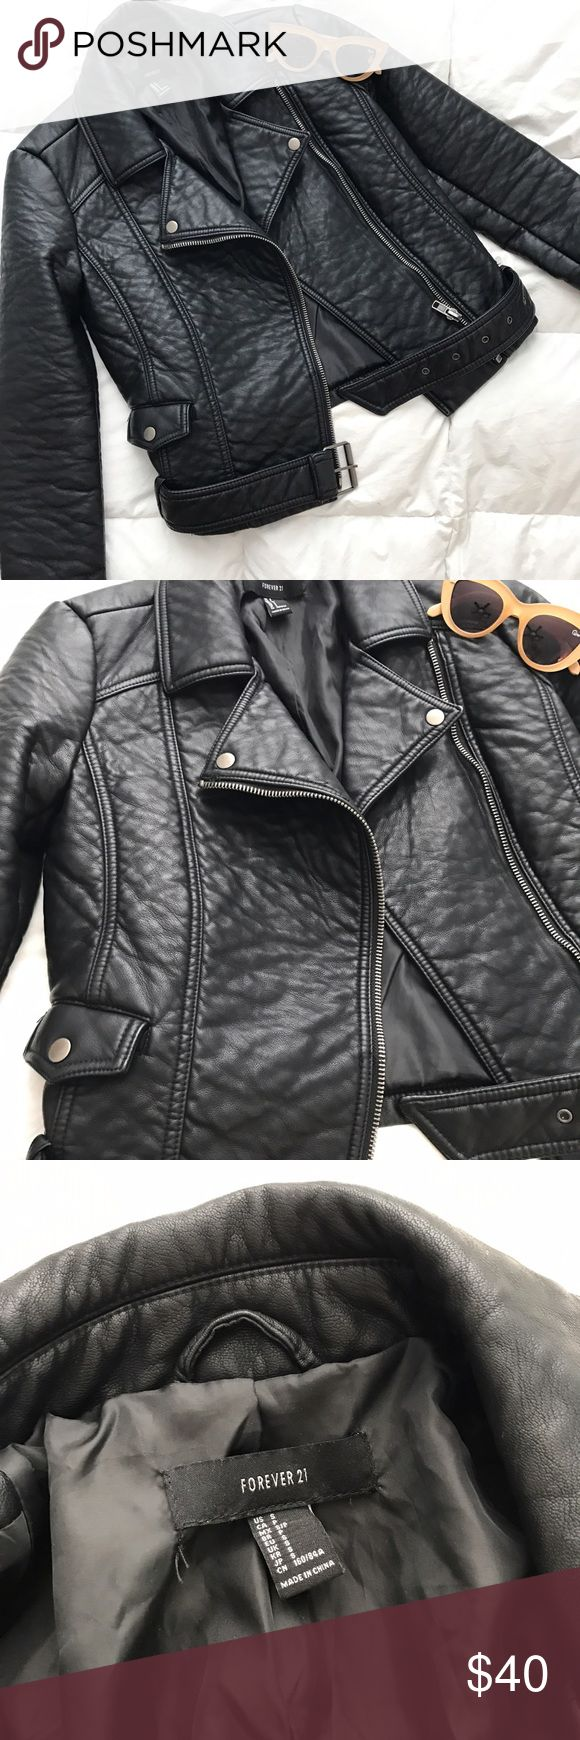 Forever 21 Black Faux Leather Jacket Faux leather Moto leather jacket. This jacket is amazing! Like new. Worn maybe 3 times. No flaws. Removable belt. Gunmetal detailing. Fits a 4 best. Sold out everywhere! Forever 21 Jackets & Coats